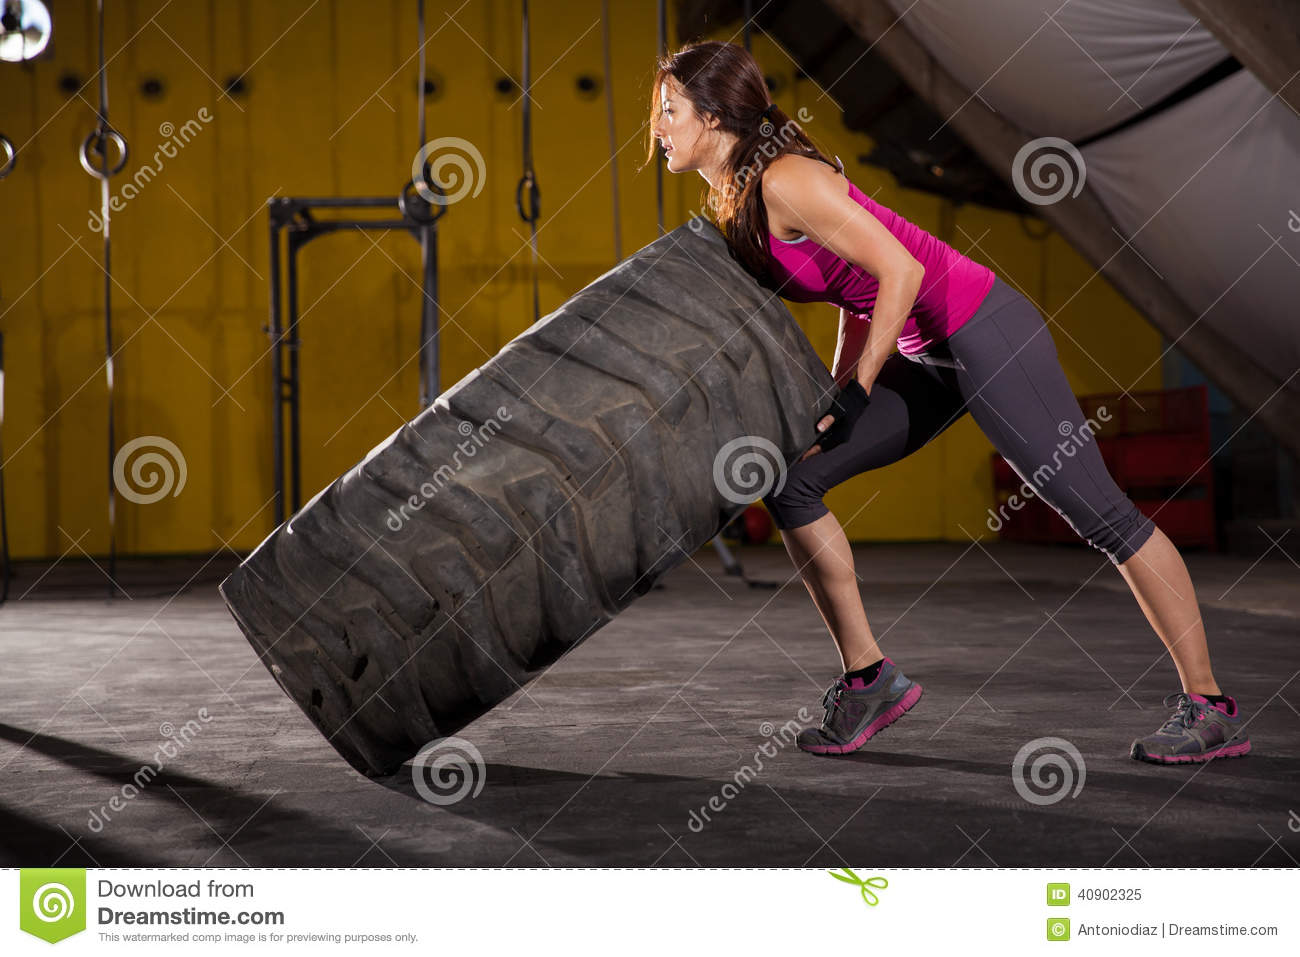 Cute girl flipping a tire stock image. Image of profile - 40902325